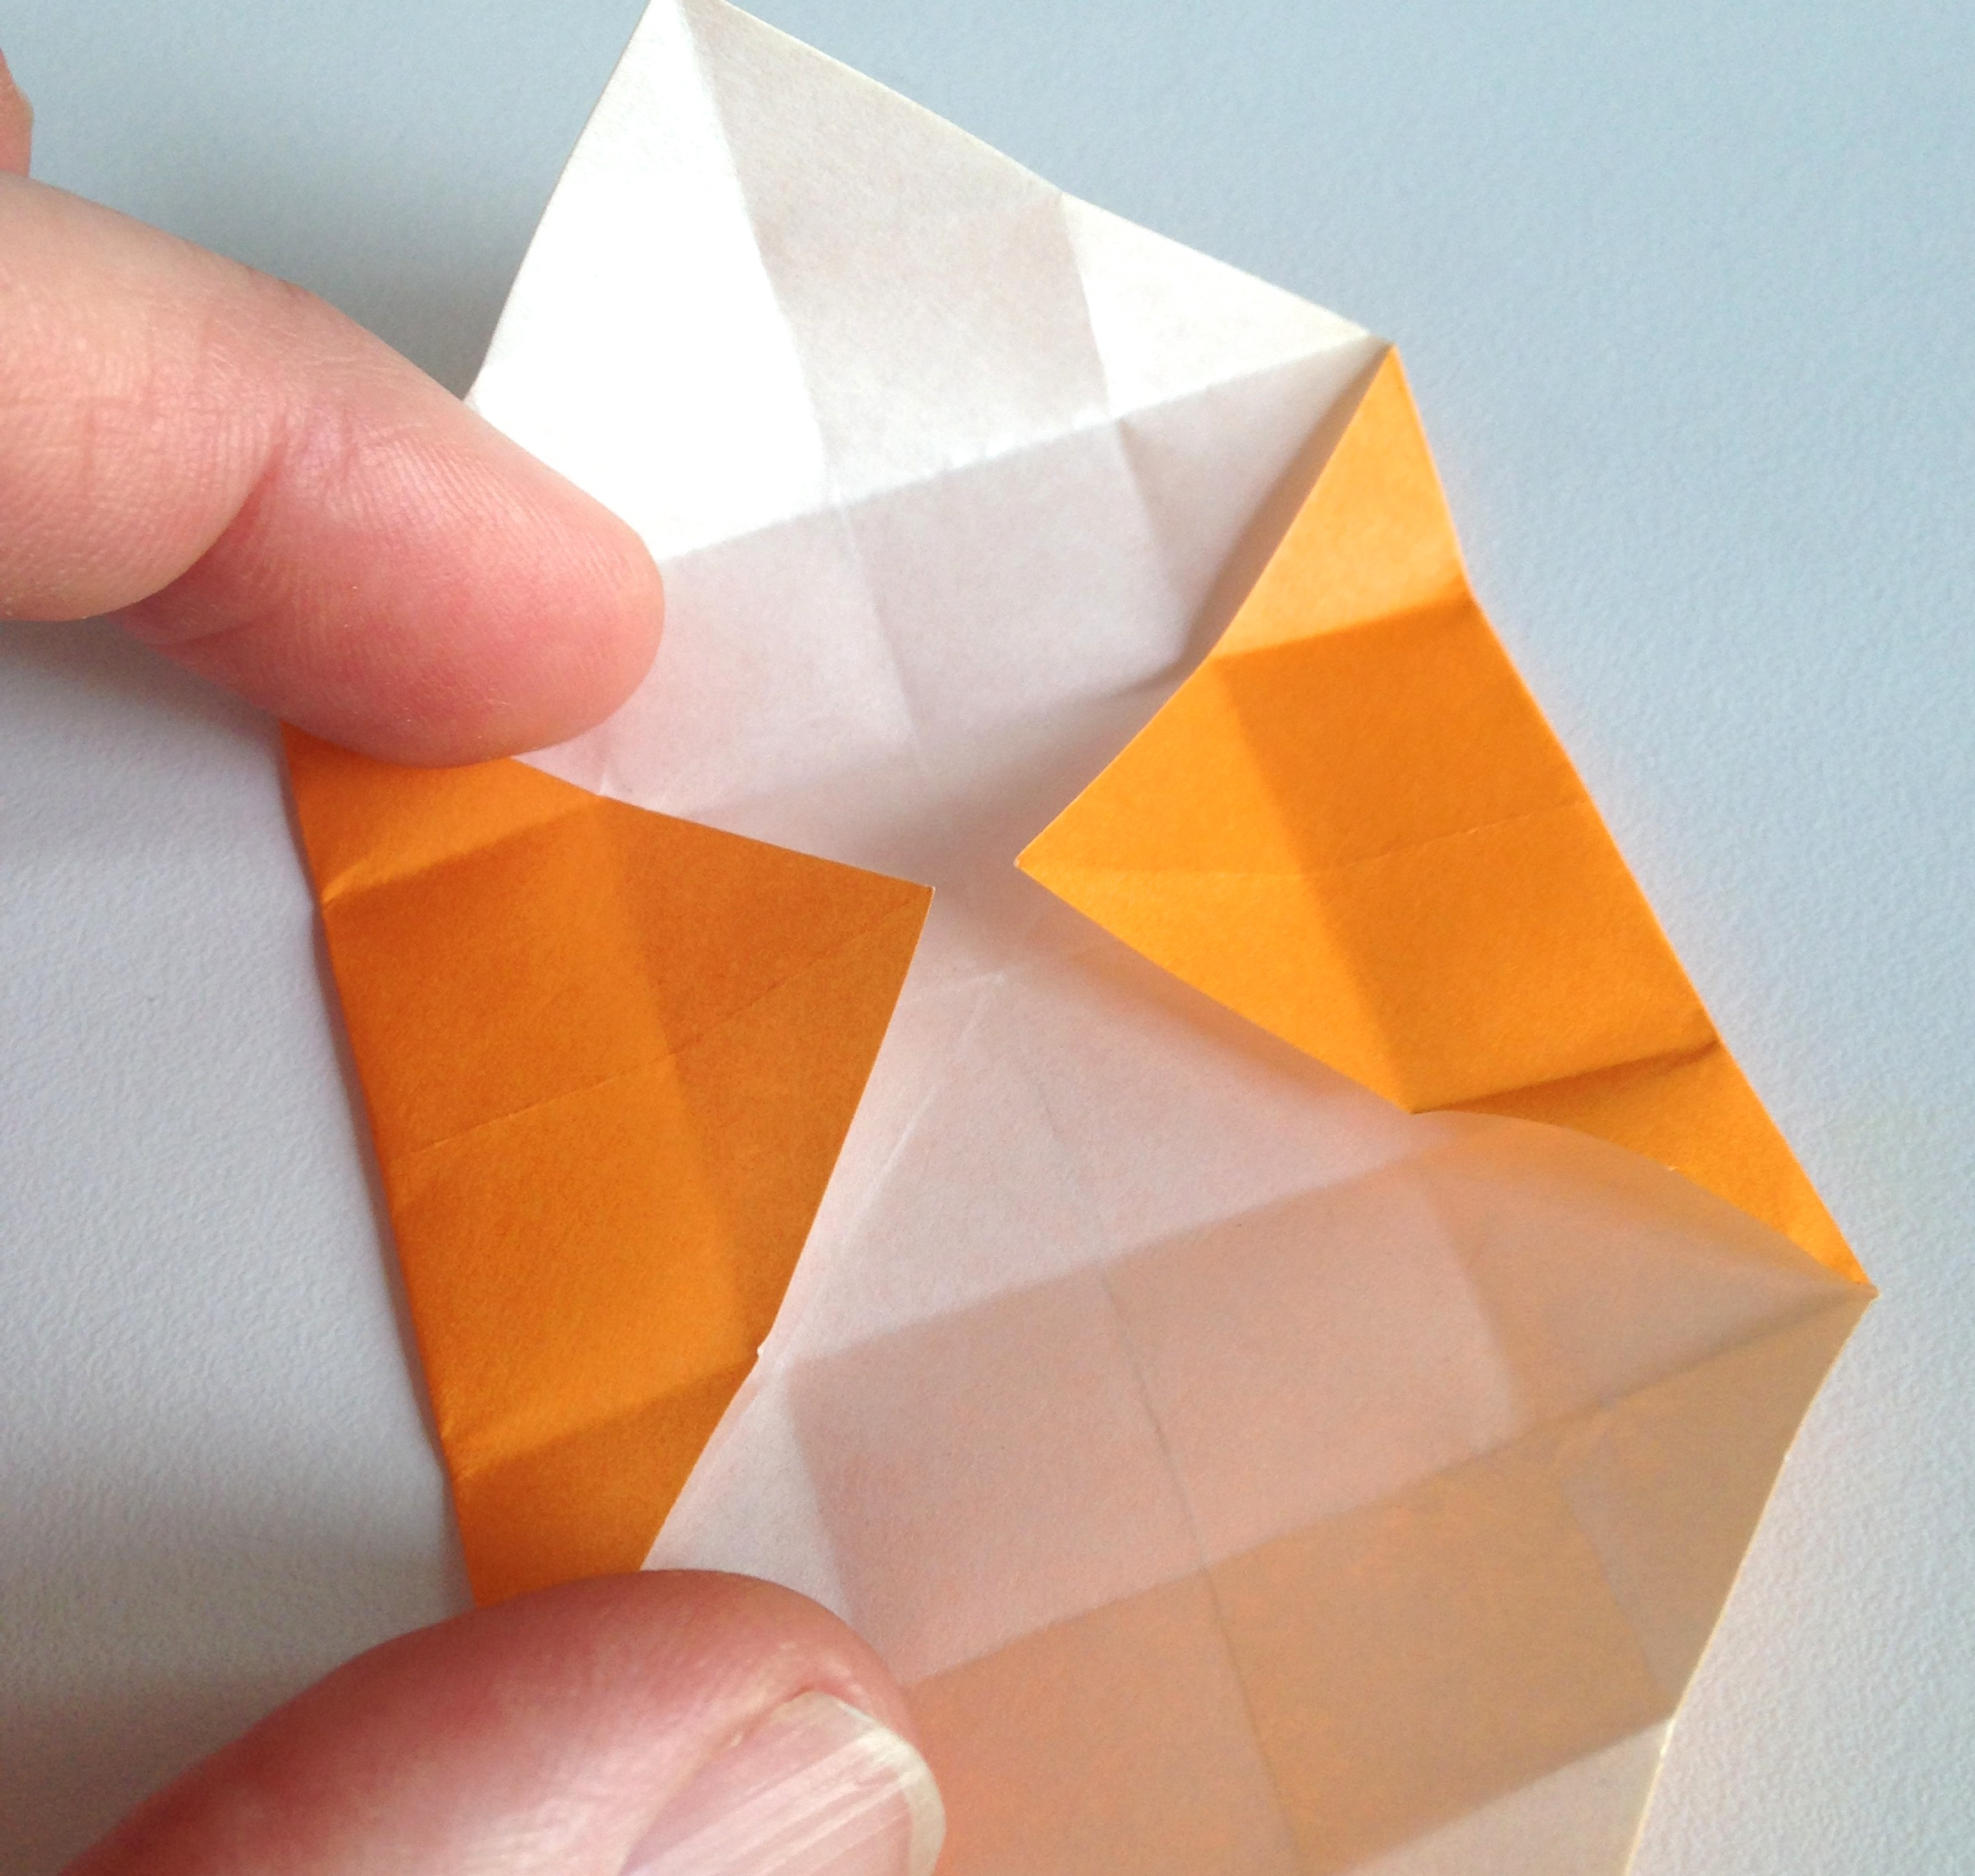 Easy Paper Box | How To Make Origami Box With Color Paper | DIY ... | 2223x2340